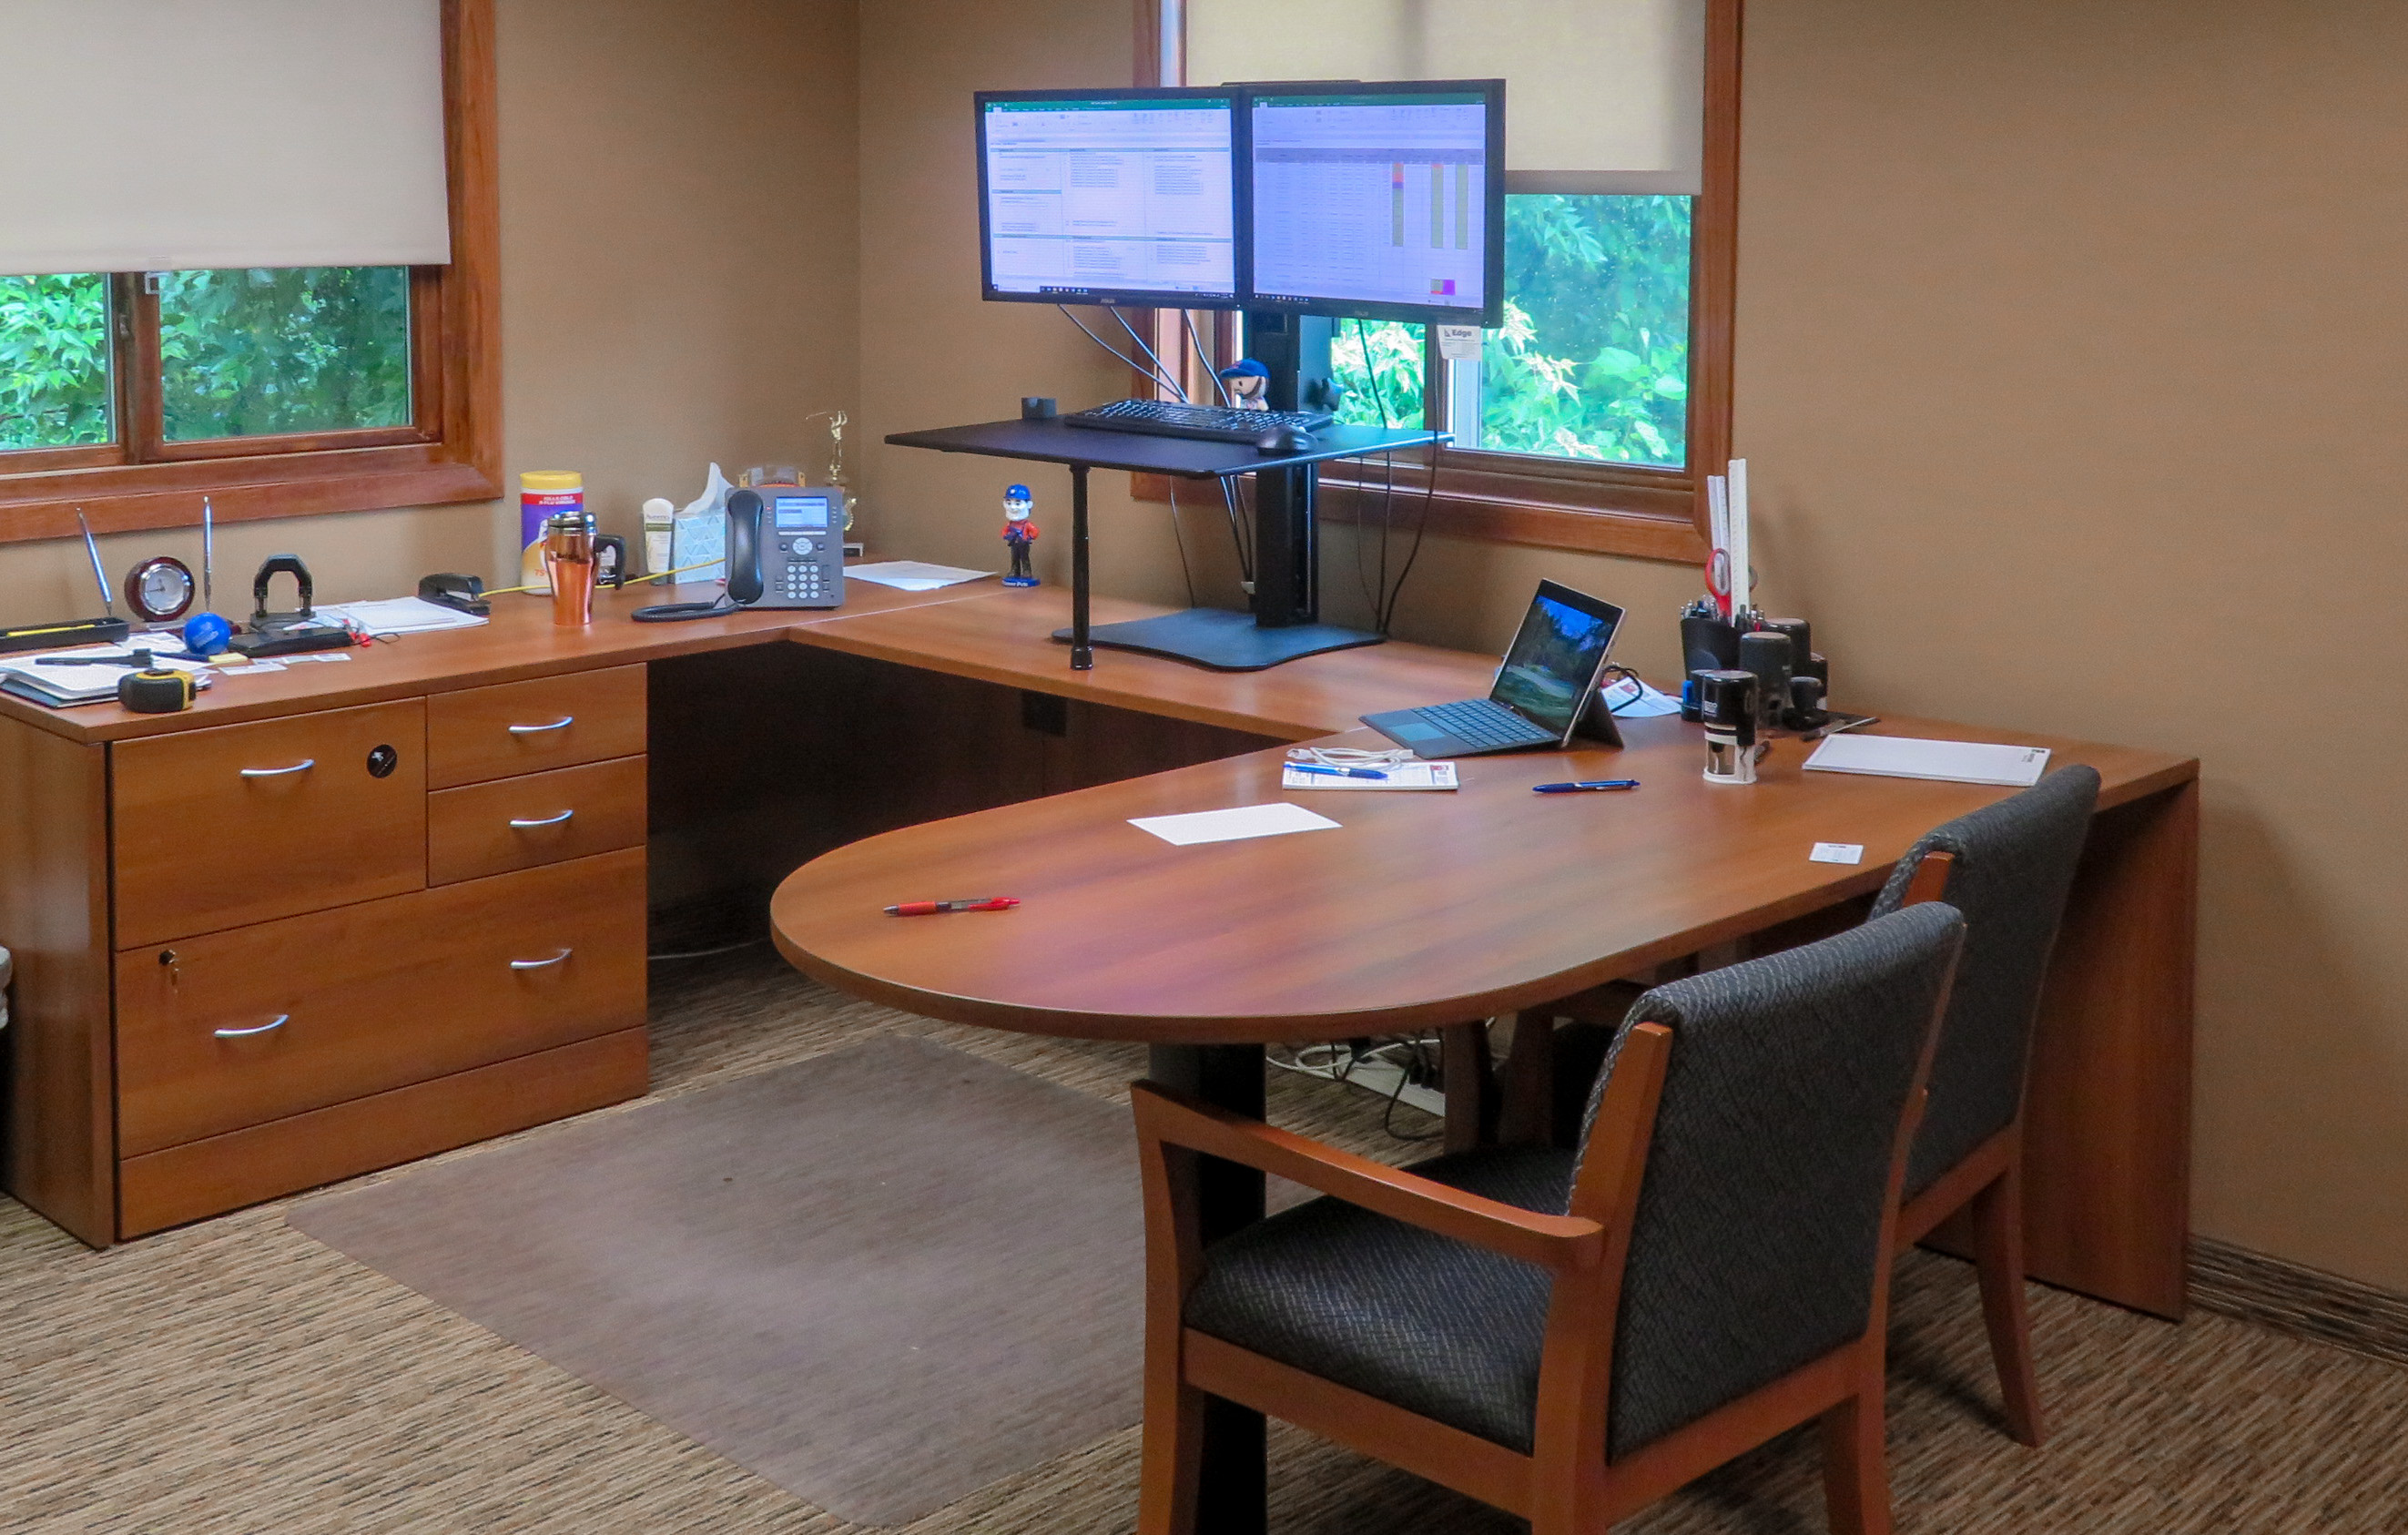 Another employee office